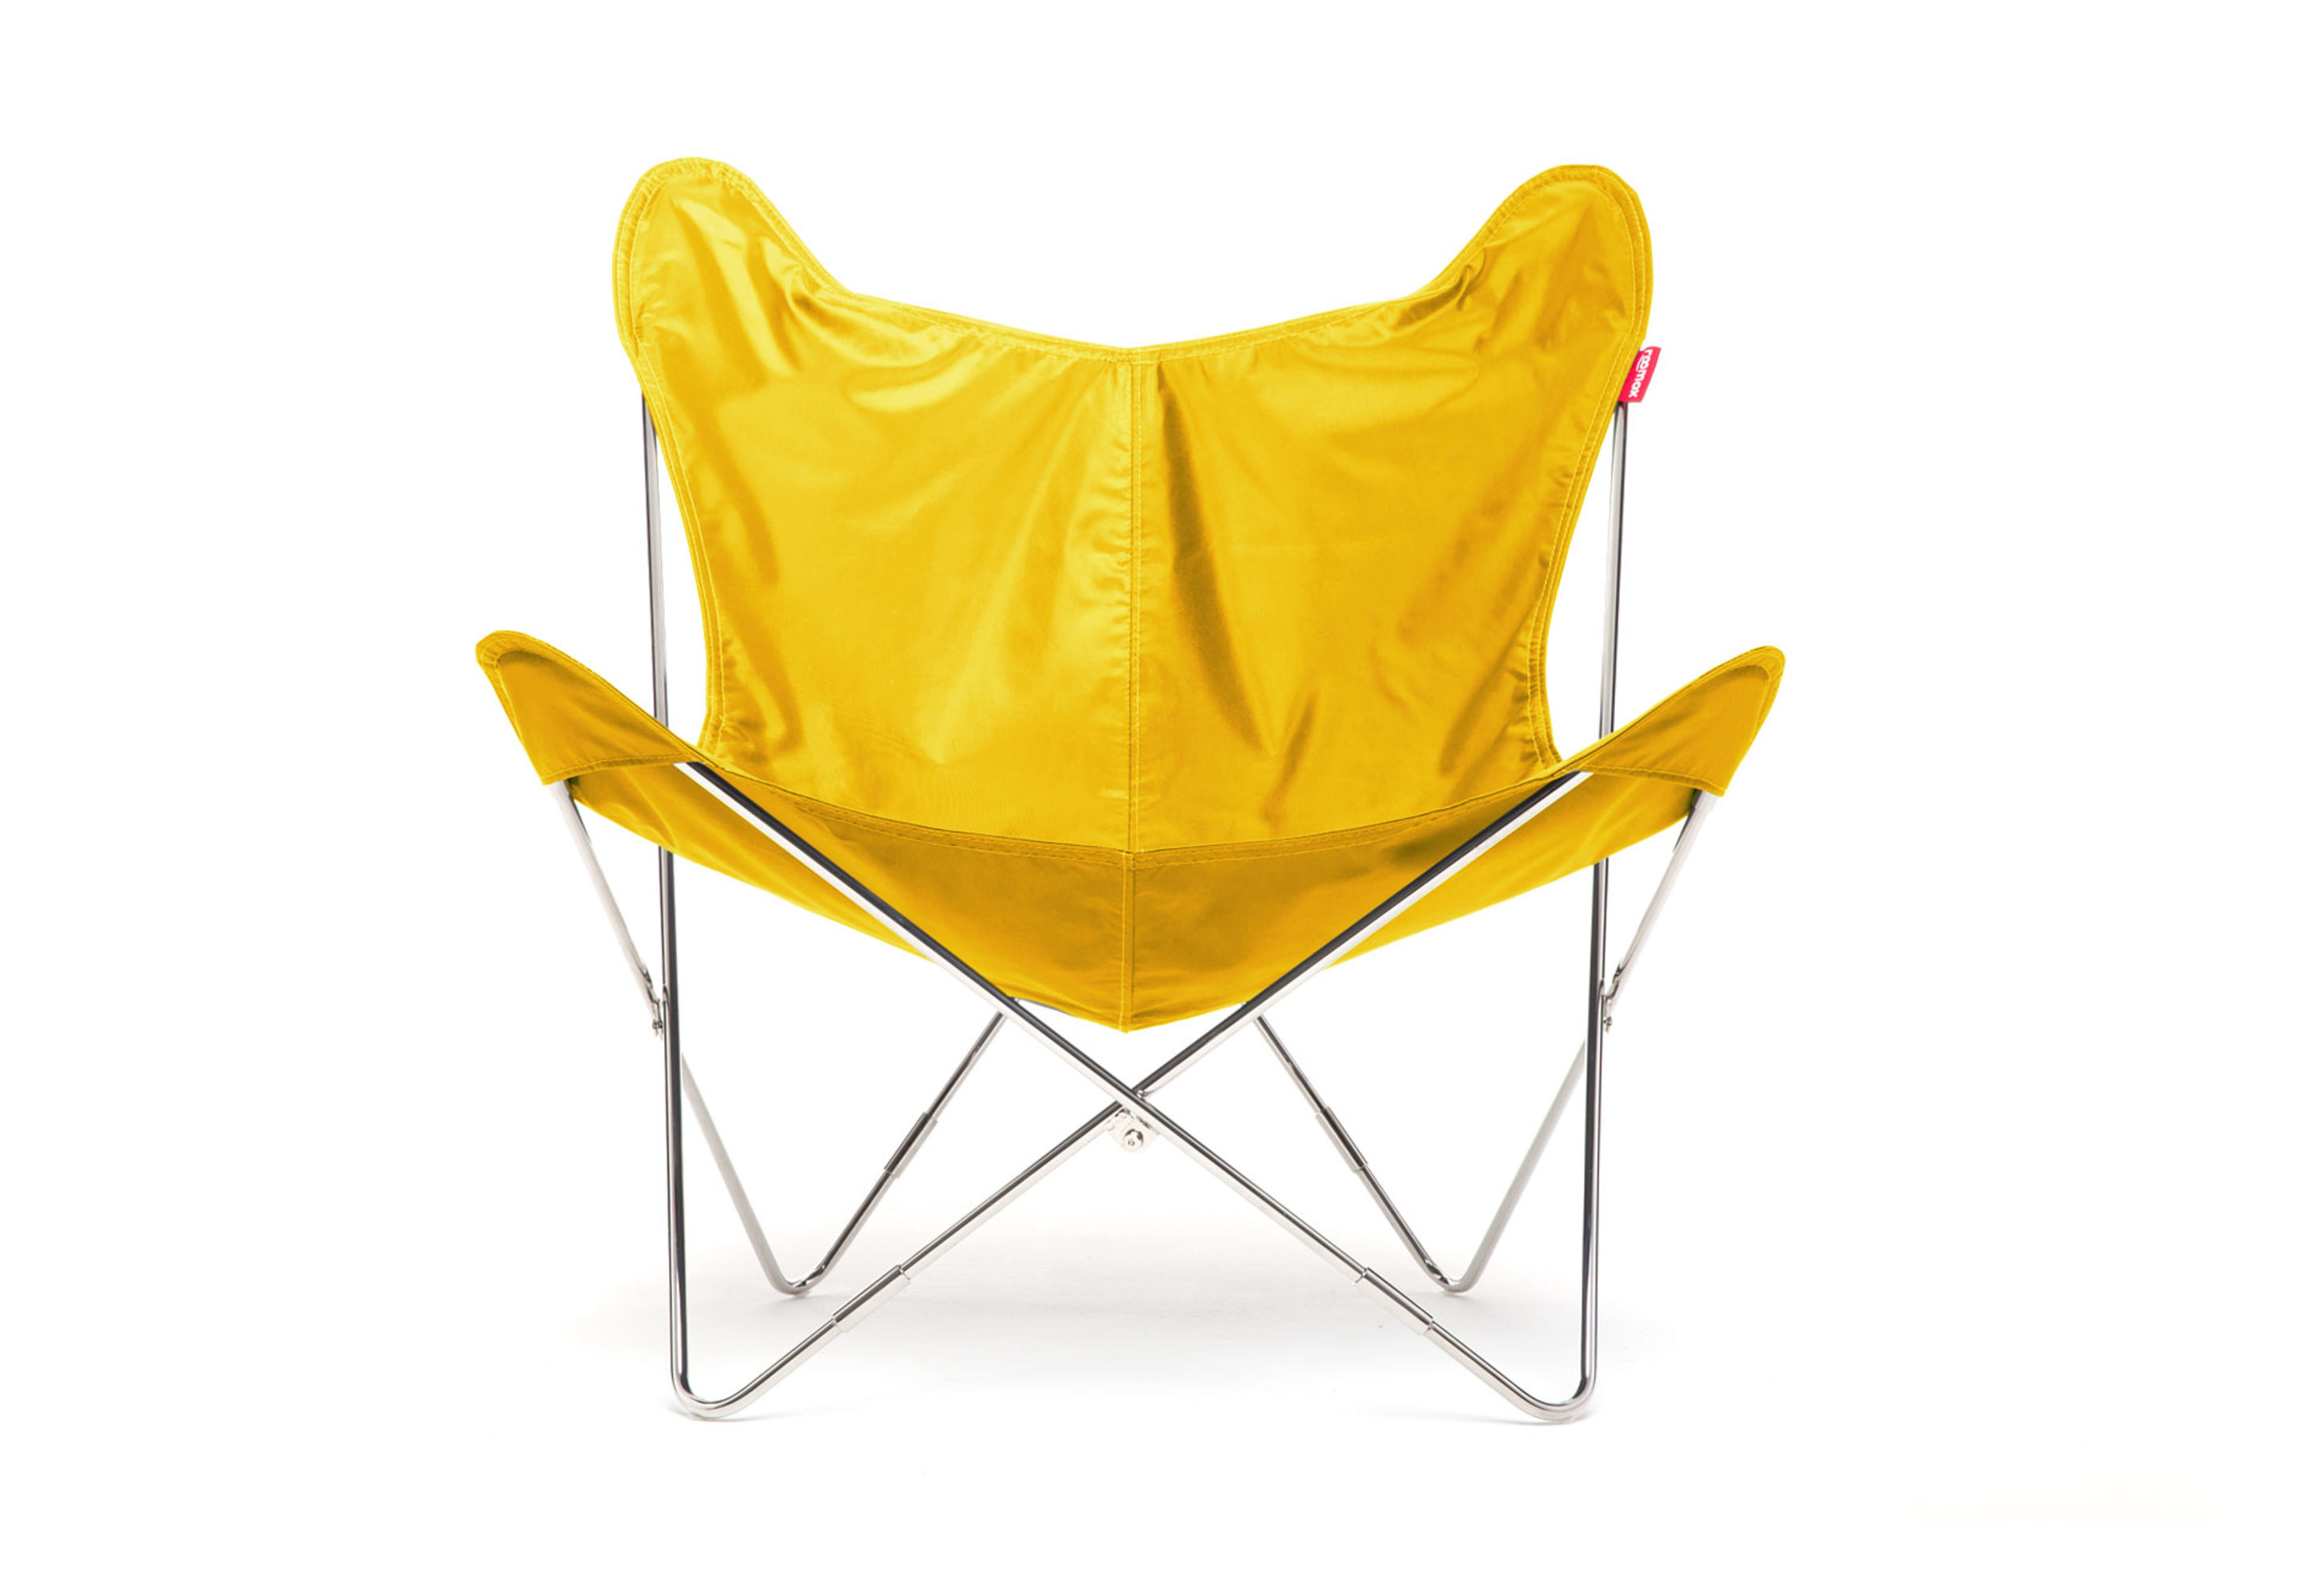 bean patio alternative chair bags chairs yellow lounger views goods furniture bag home majestic htm p cushion